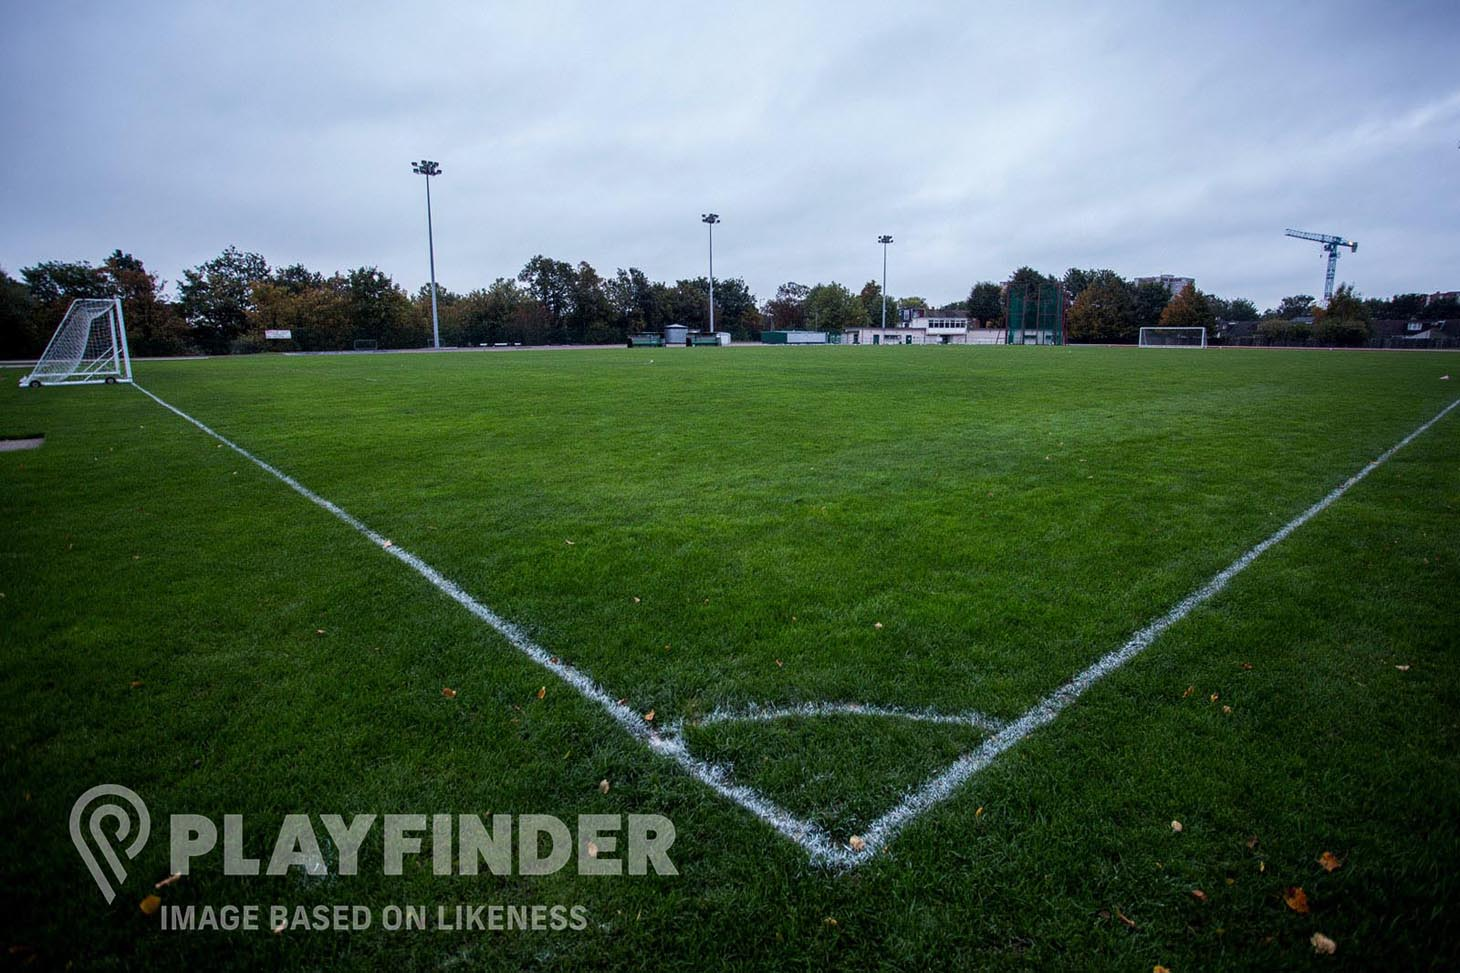 Nicholls Community Football Centre 11 a side | Grass football pitch